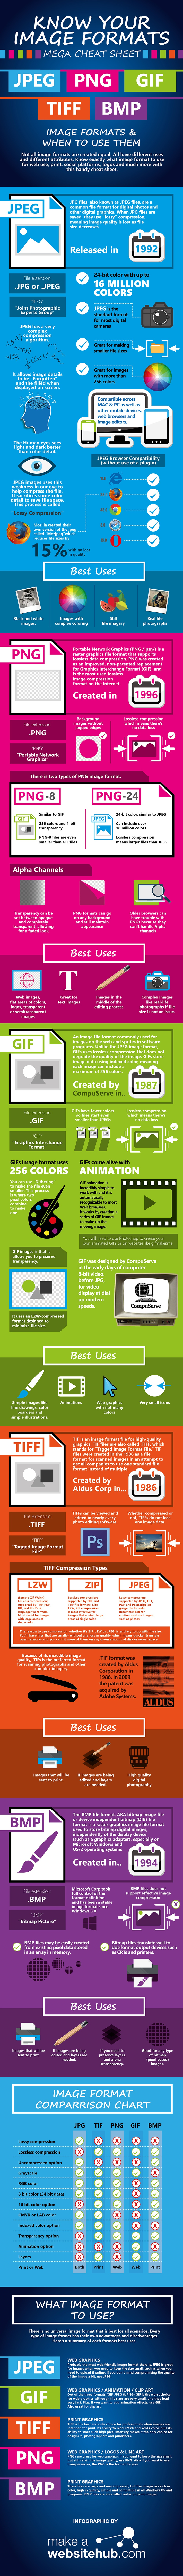 JPEG, PNG, or GIF? The Ultimate Cheat Sheet of Image File Formats.